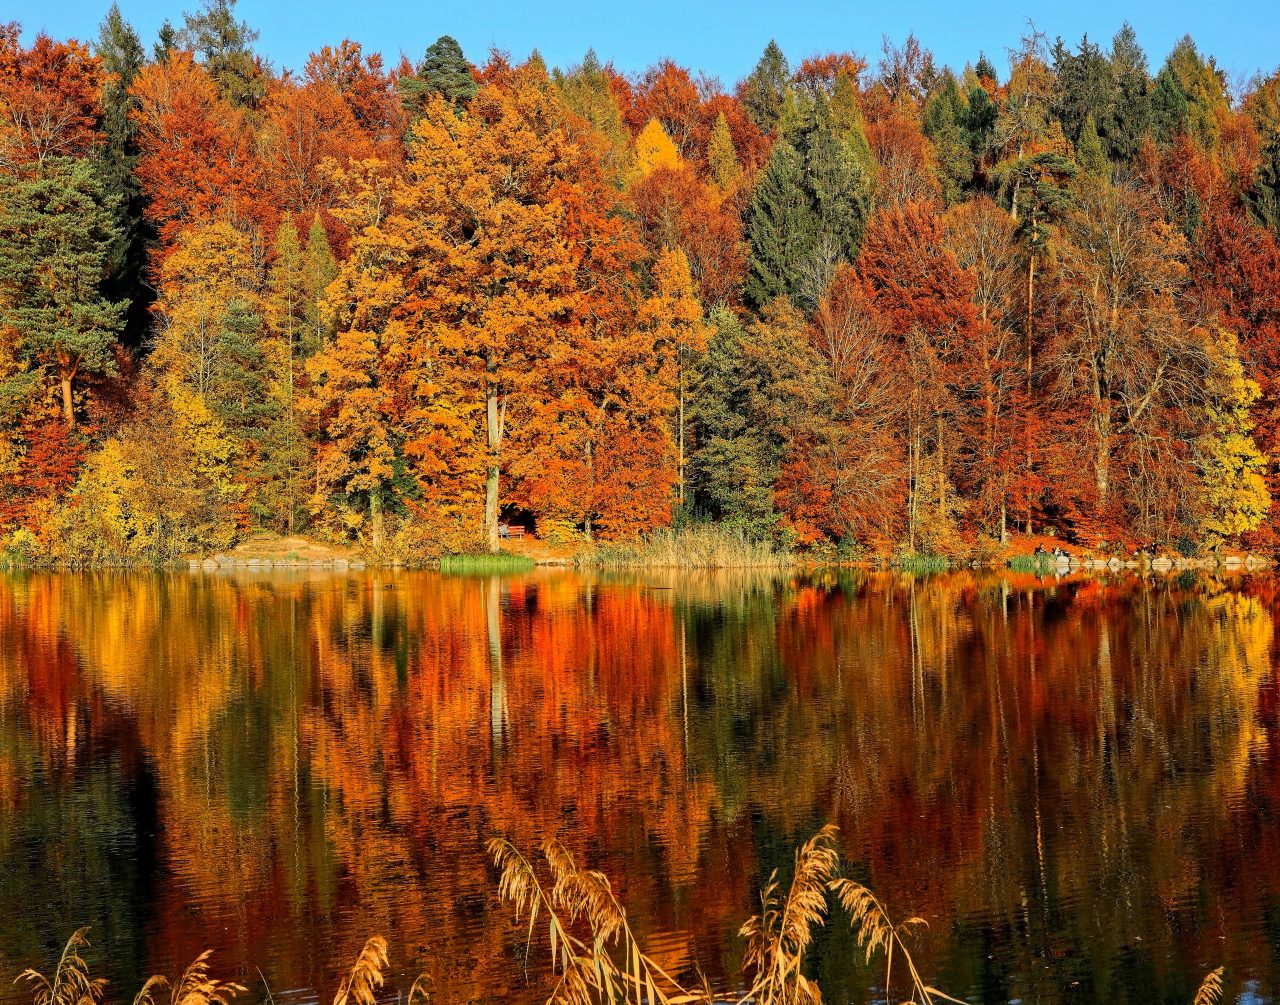 autumn forest by a lake